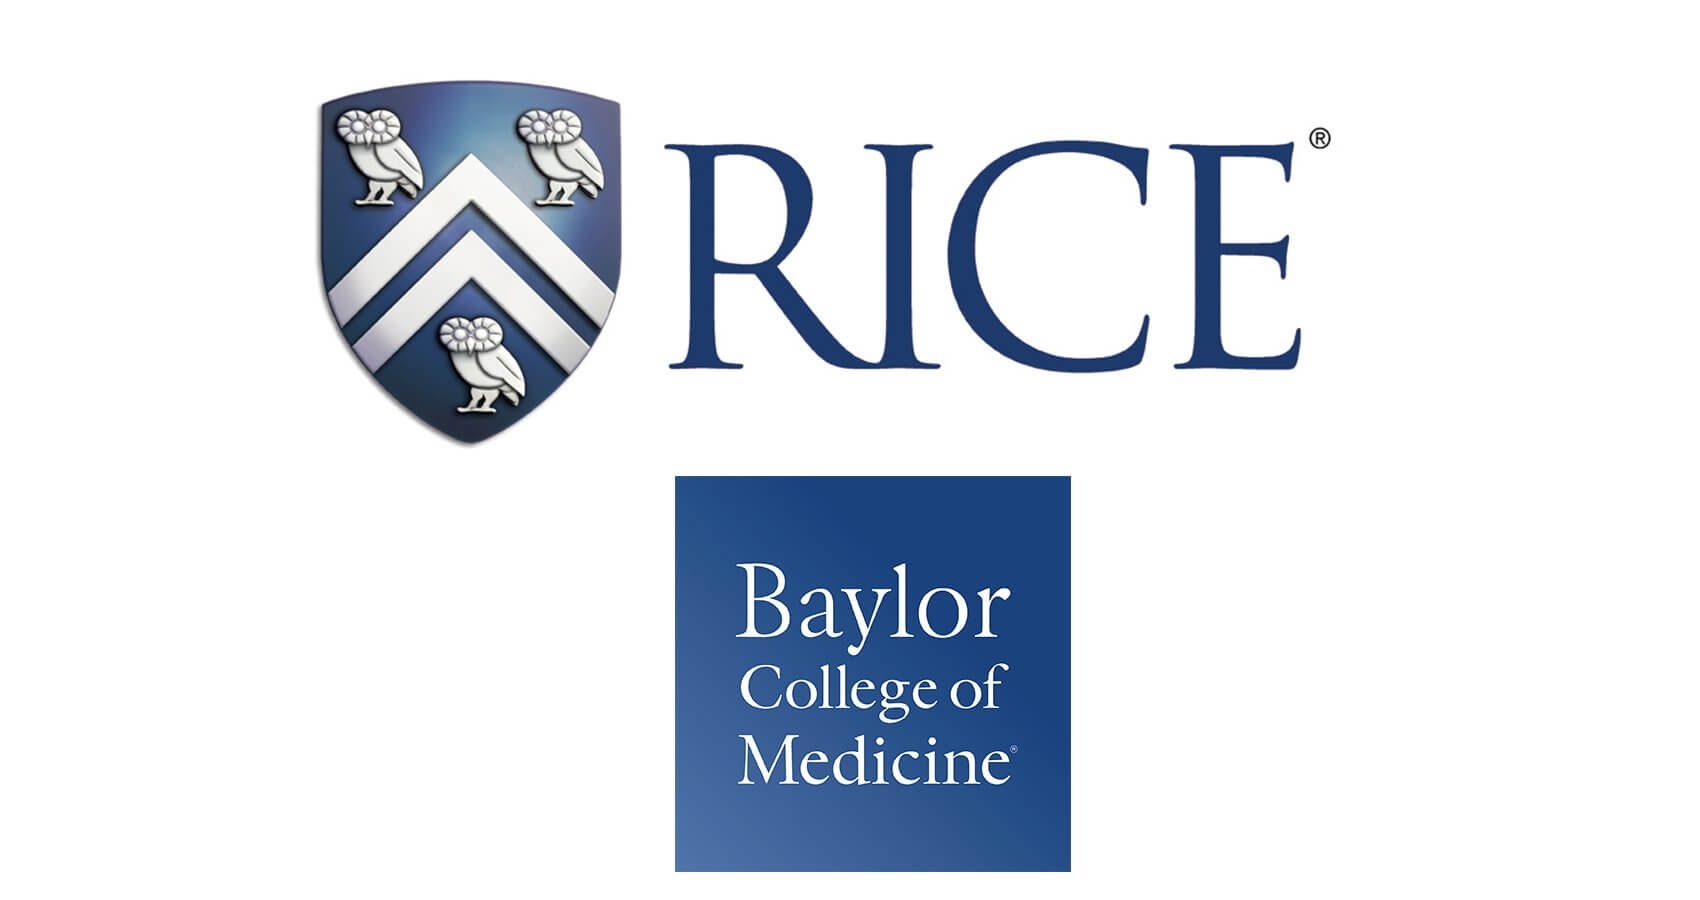 baylor college of medicine secondary essay School facts baylor, founded in 1845, is a church-affiliated university undergraduate programs are offered through the college of arts and sciences, the hankamer school of business, the honors college, the schools of education, engineering and computer.